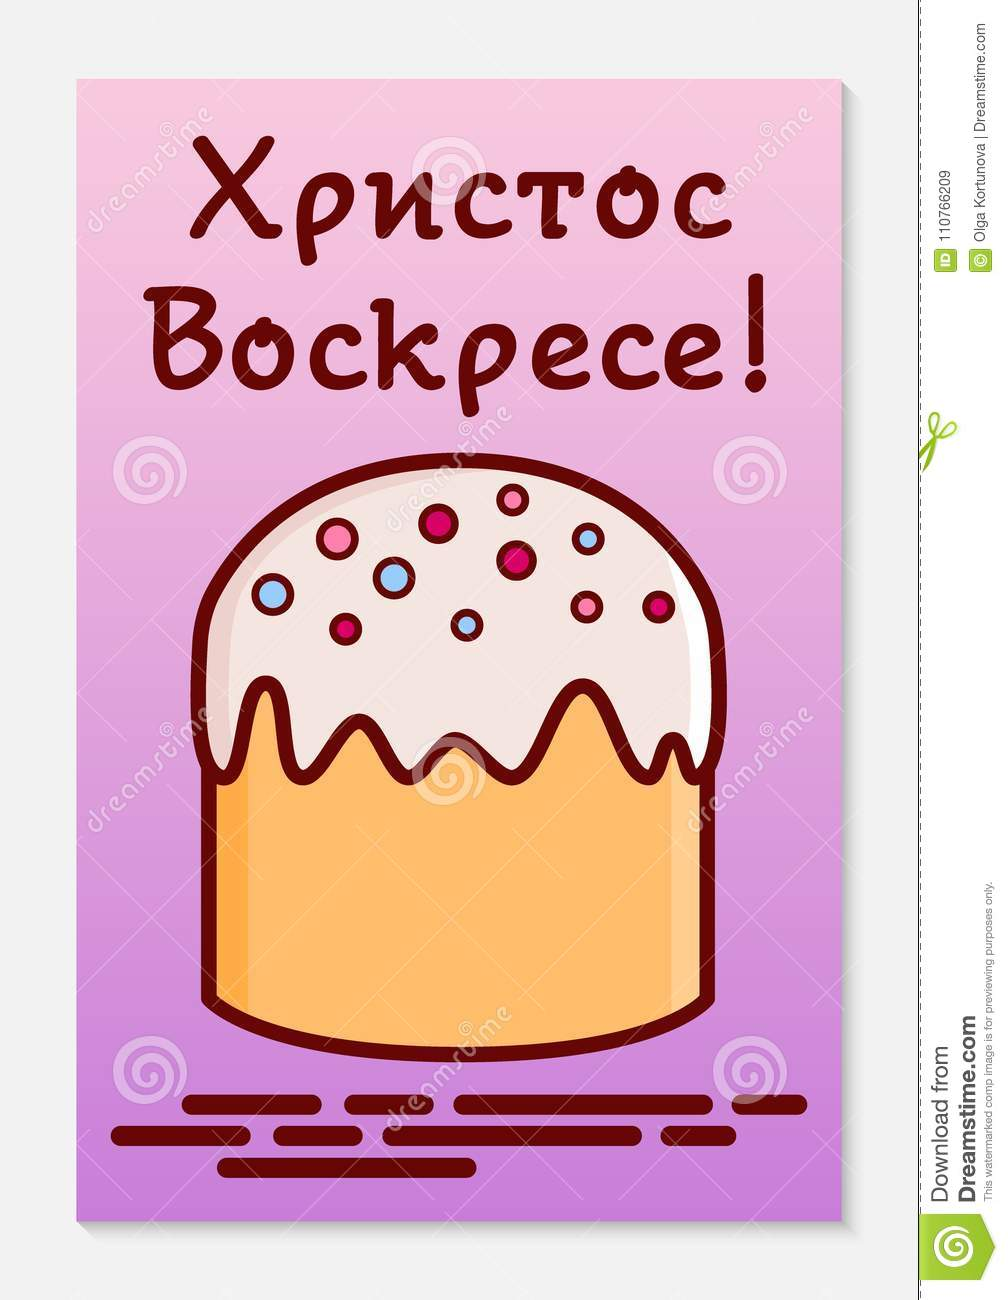 Orthodox Easter Greeting Card A Traditional Cake With Glaze Called